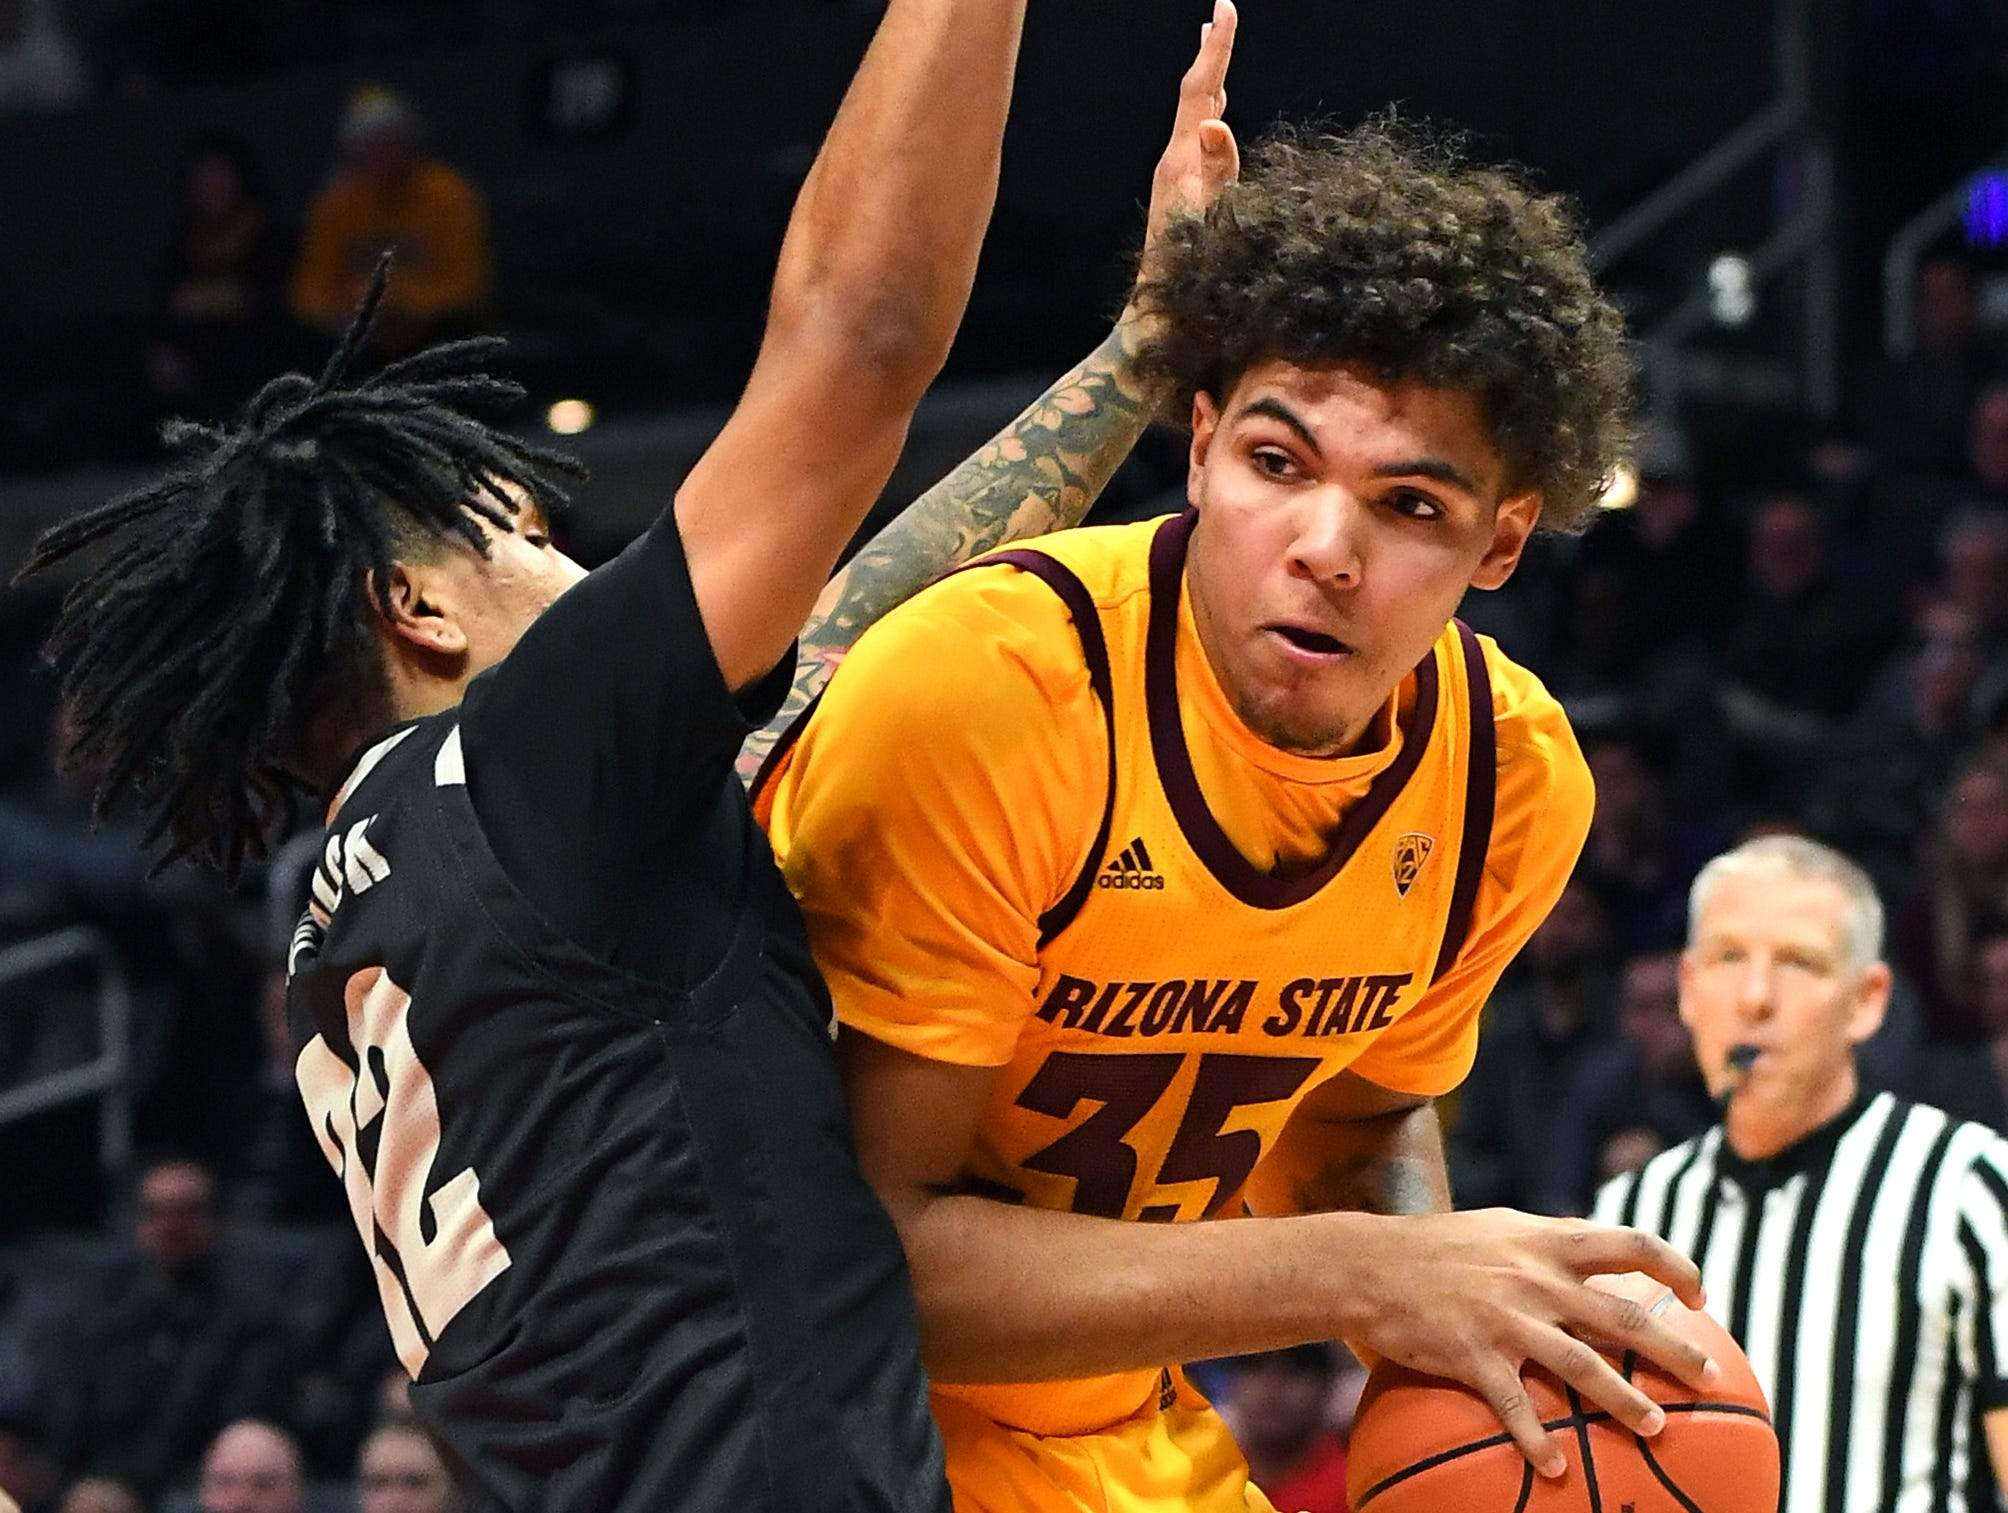 Dec 7, 2018; Los Angeles, CA, USA;  Nevada Wolf Pack guard Jazz Johnson (22) defends Arizona State Sun Devils forward Taeshon Cherry (35) under the basket in the first half of the game at Staples Center. Mandatory Credit: Jayne Kamin-Oncea-USA TODAY Sports